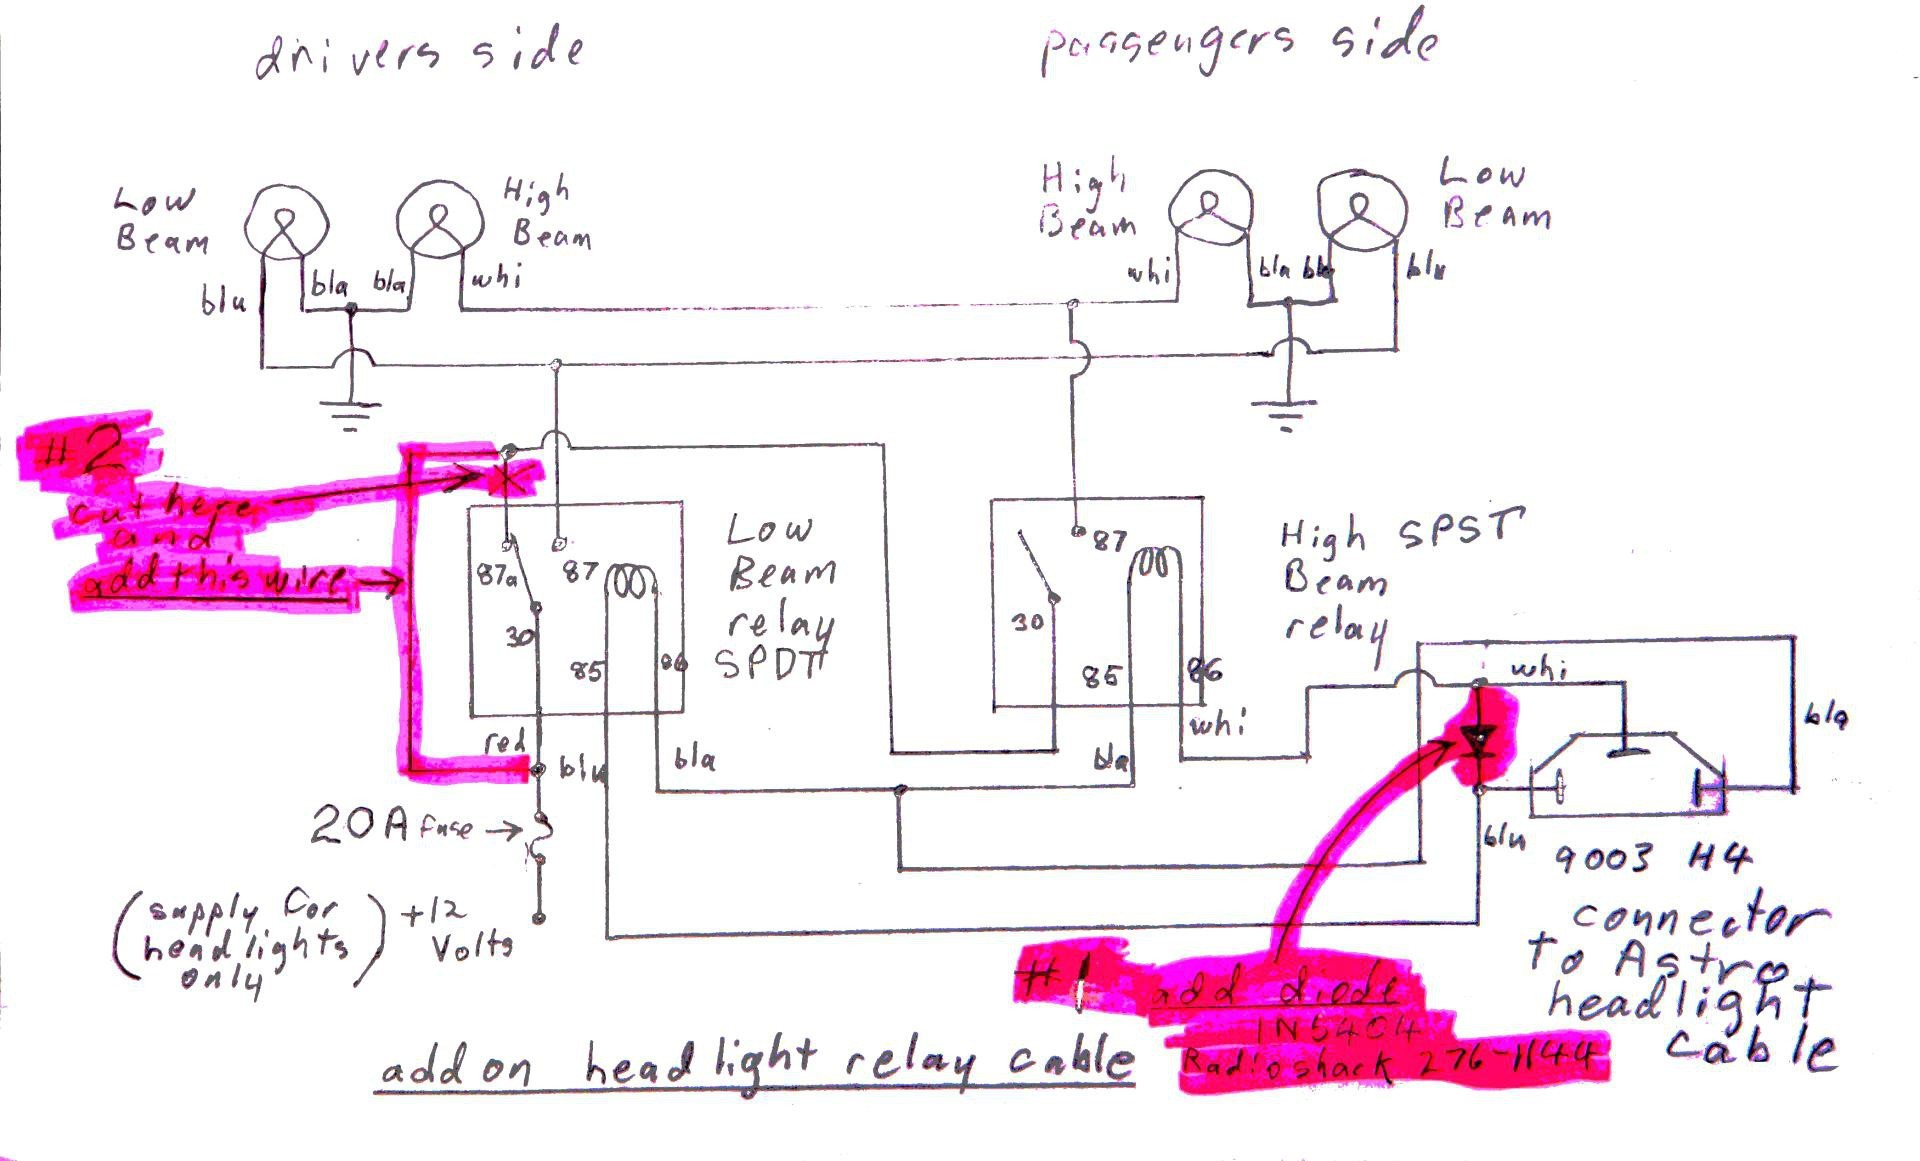 Headlight Relay Wiring Diagram New Magnificent Headlight Relay Diagram Ideas Electrical and Wiring